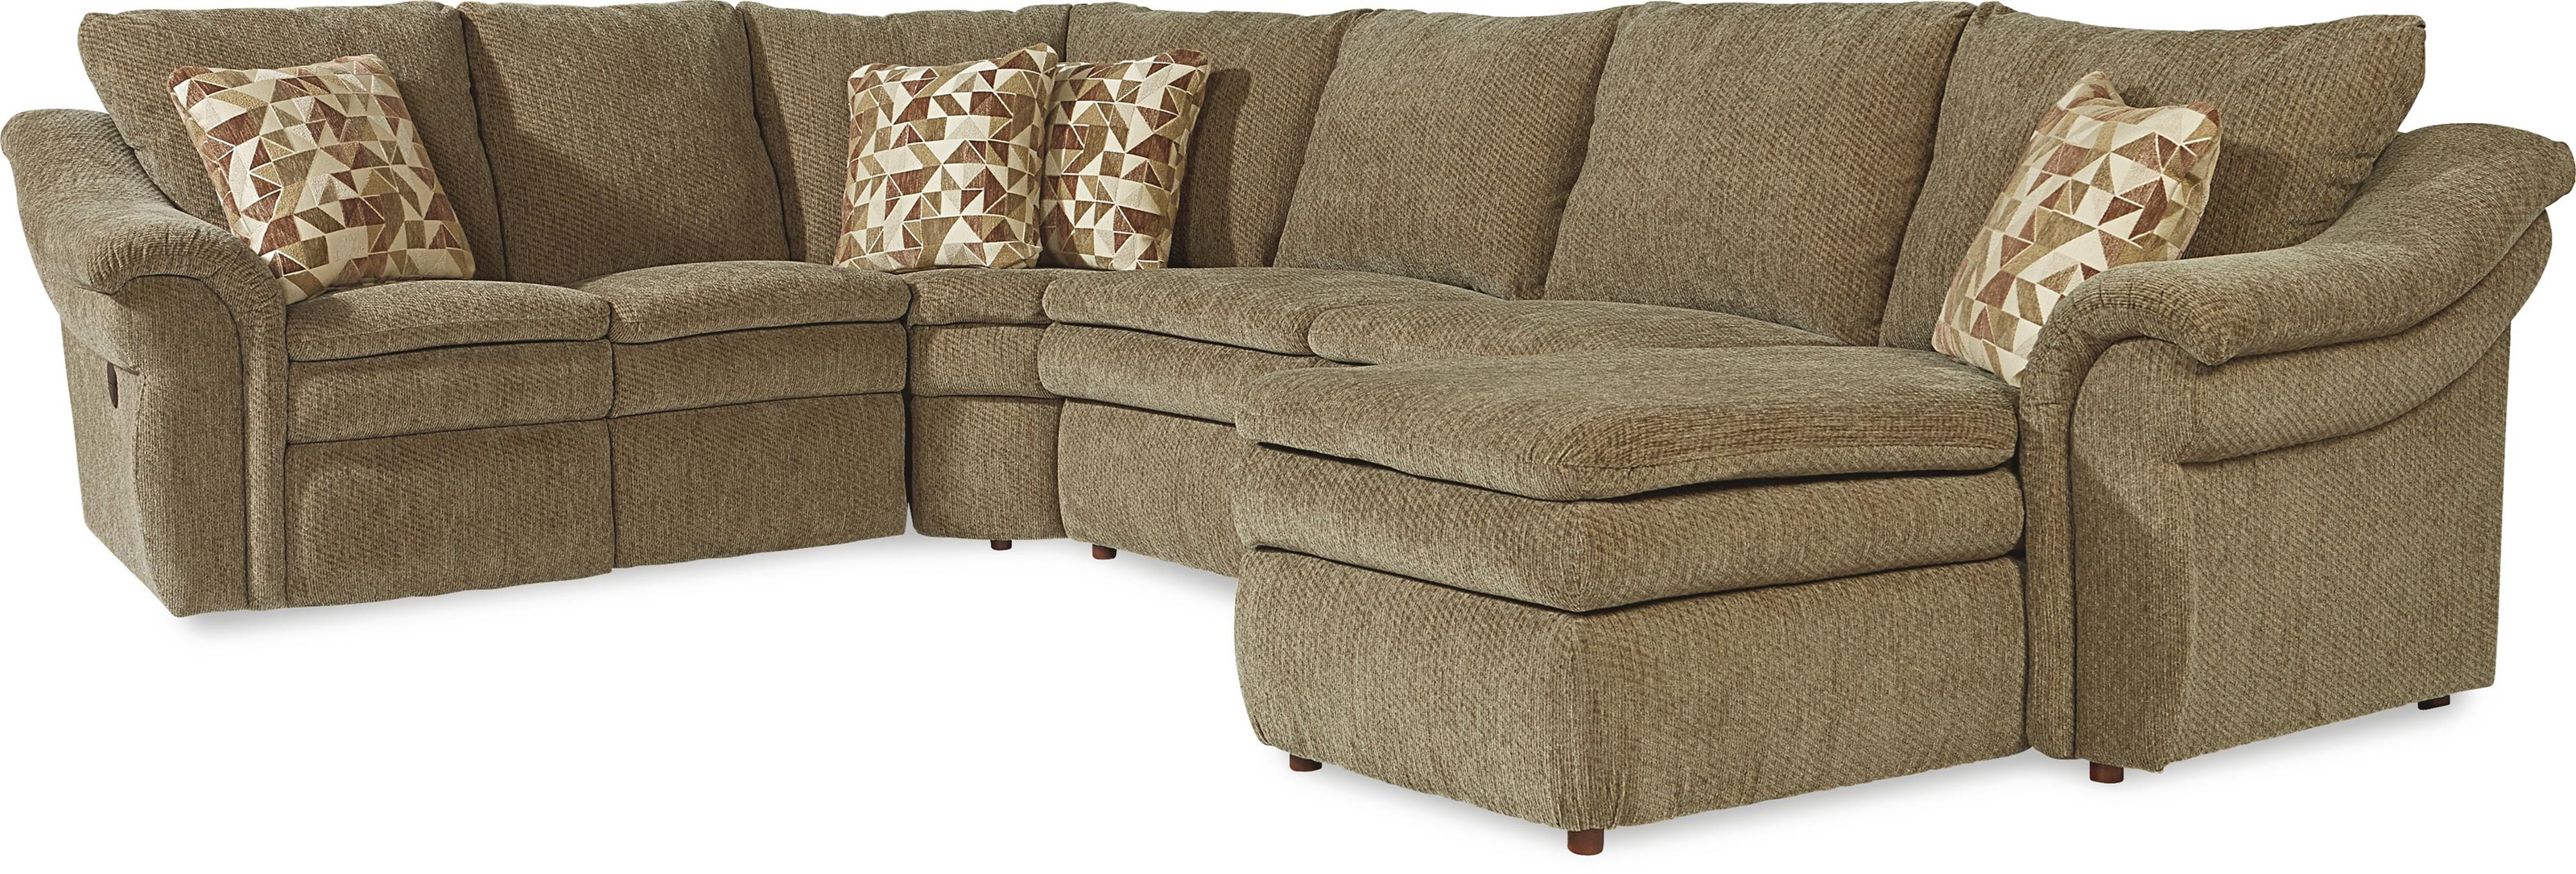 4 pc Sectional  with Left Arm Sitting Chaise